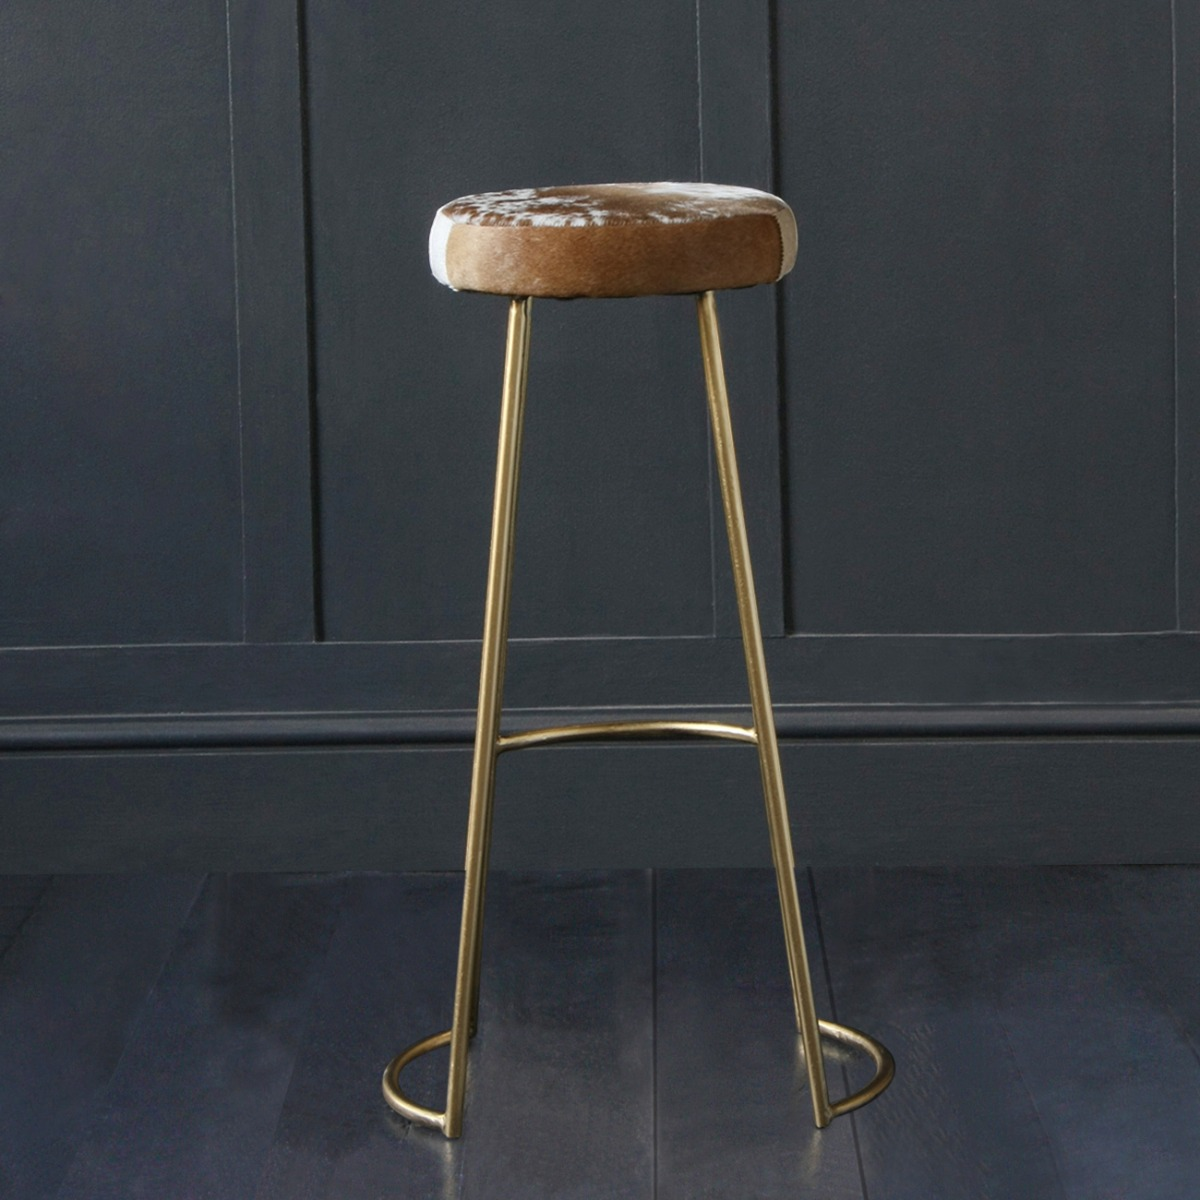 Tapas Industrial Bar Stool, Gold Base, Brown & White Cow Hide, 75cm